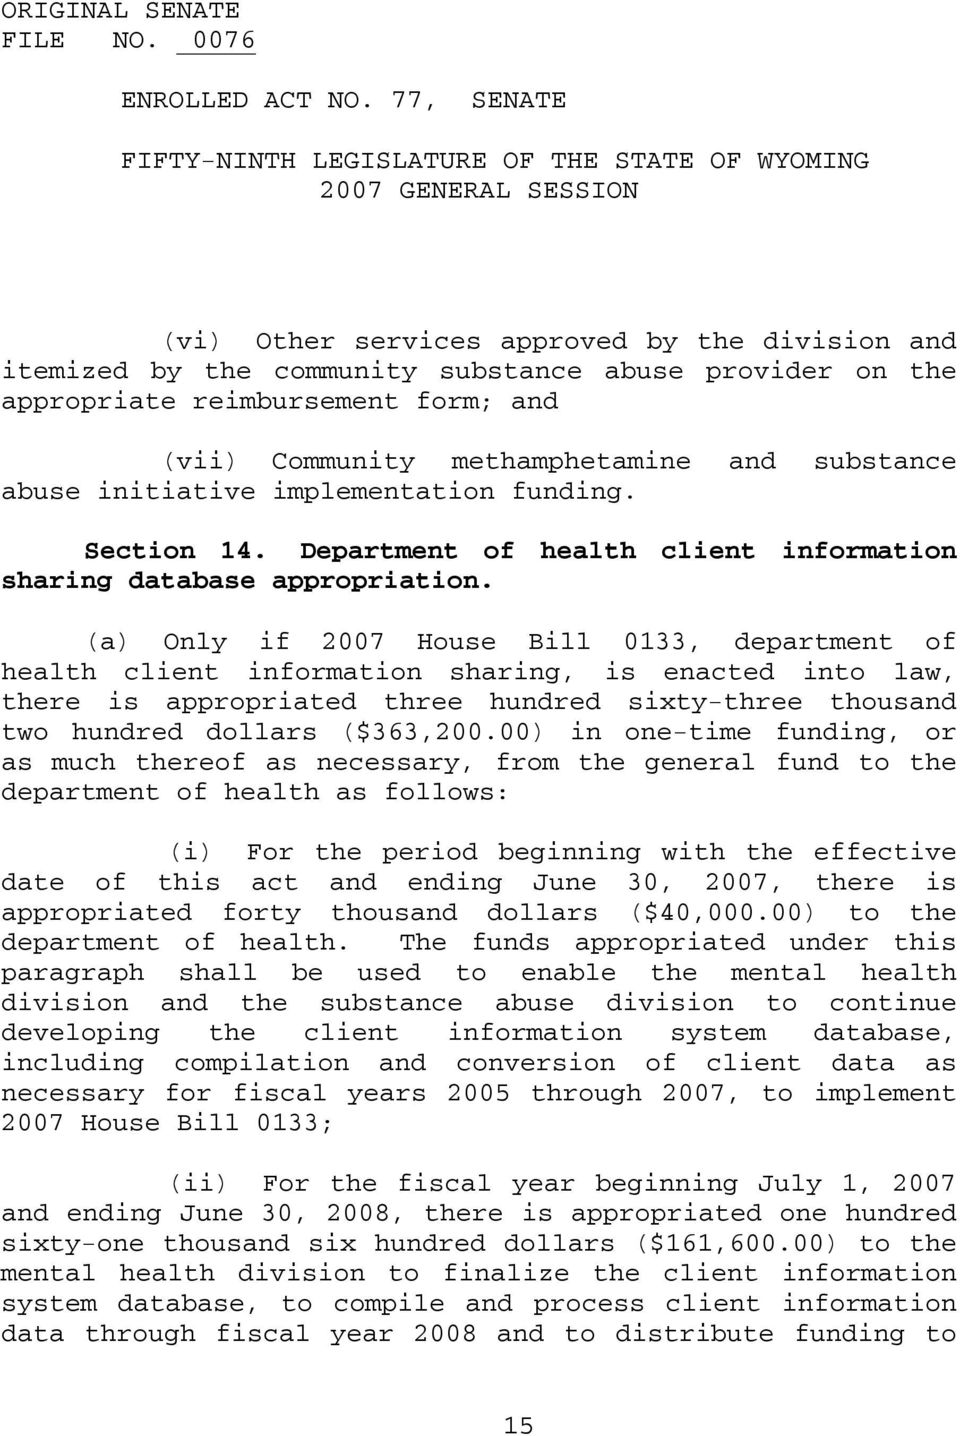 (a) Only if 2007 House Bill 0133, department of health client information sharing, is enacted into law, there is appropriated three hundred sixty-three thousand two hundred dollars ($363,200.